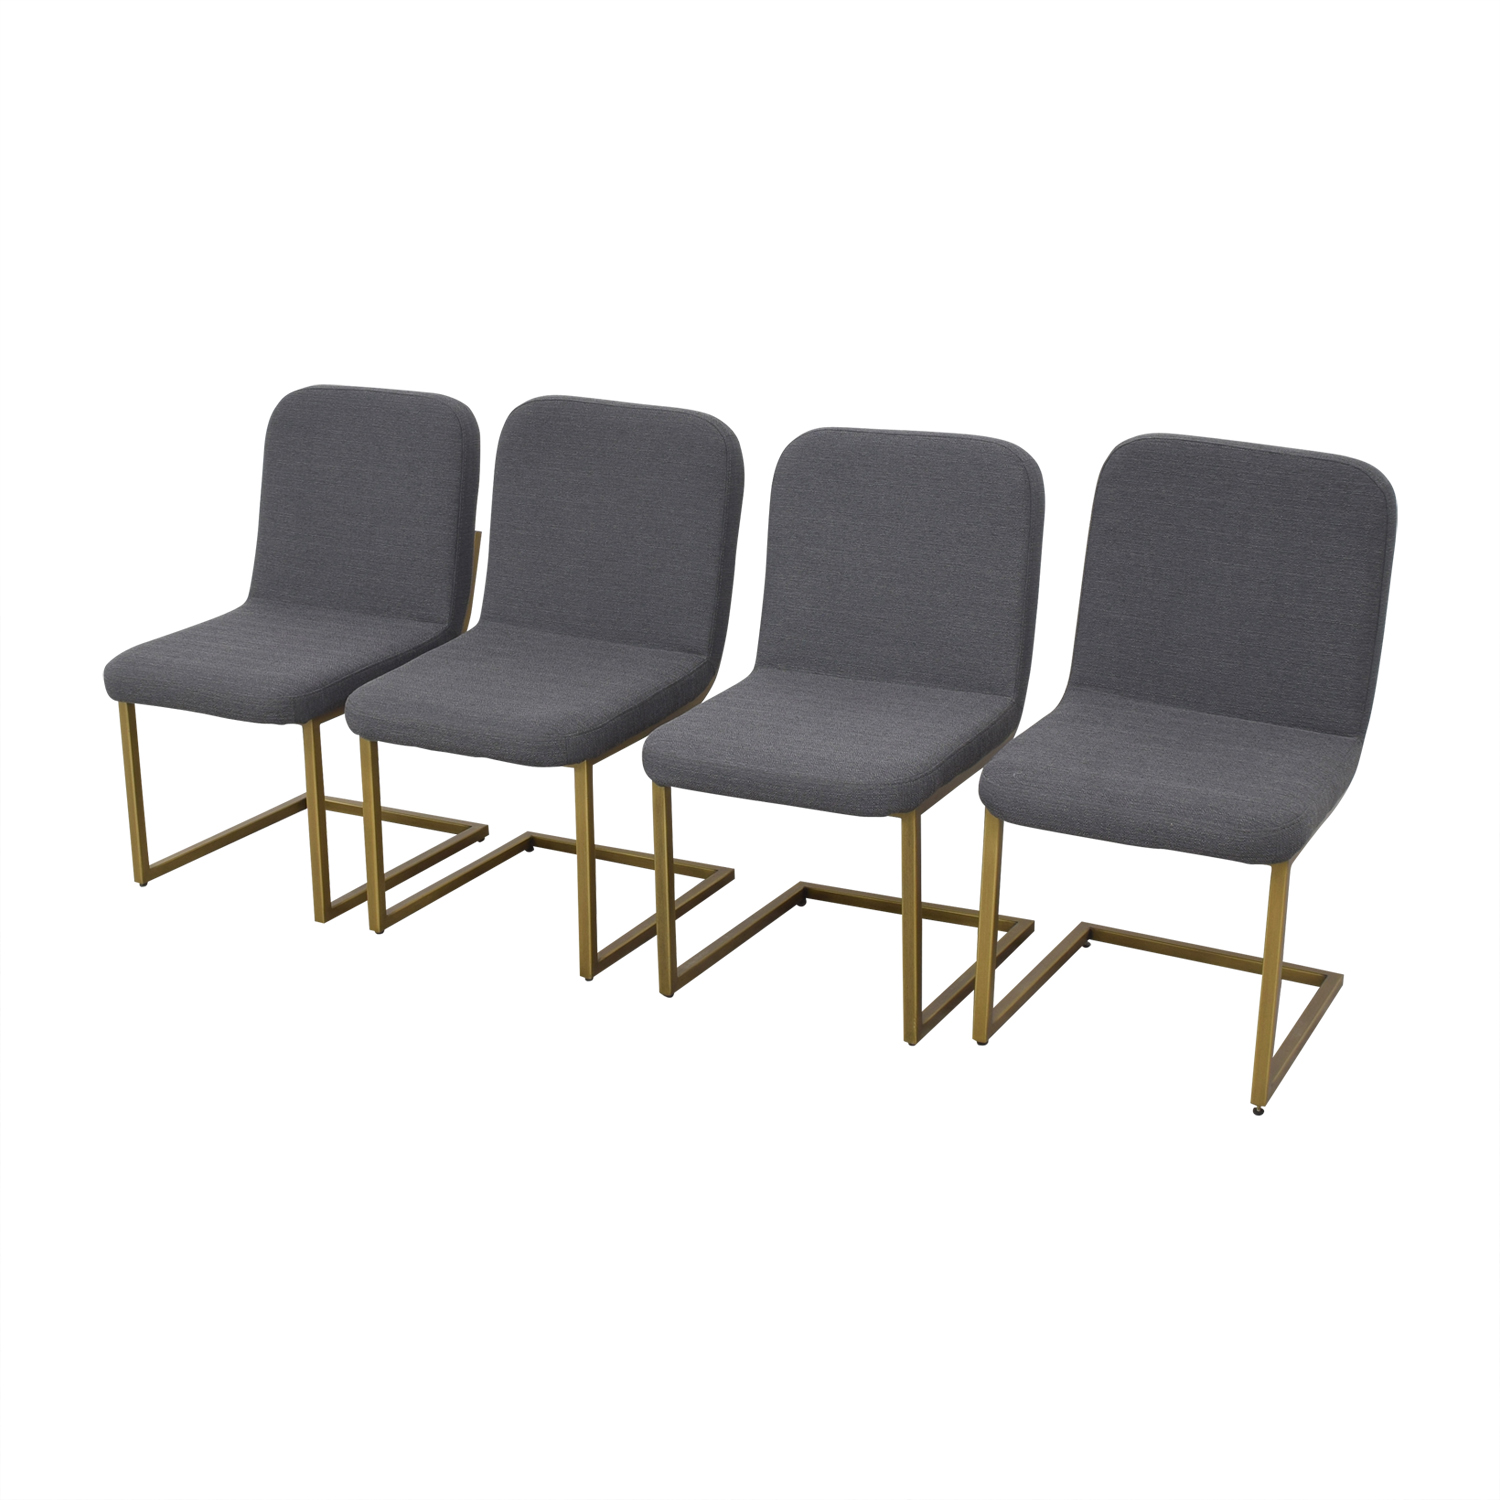 Article Article Alchemy Dining Chairs dark gray and gold